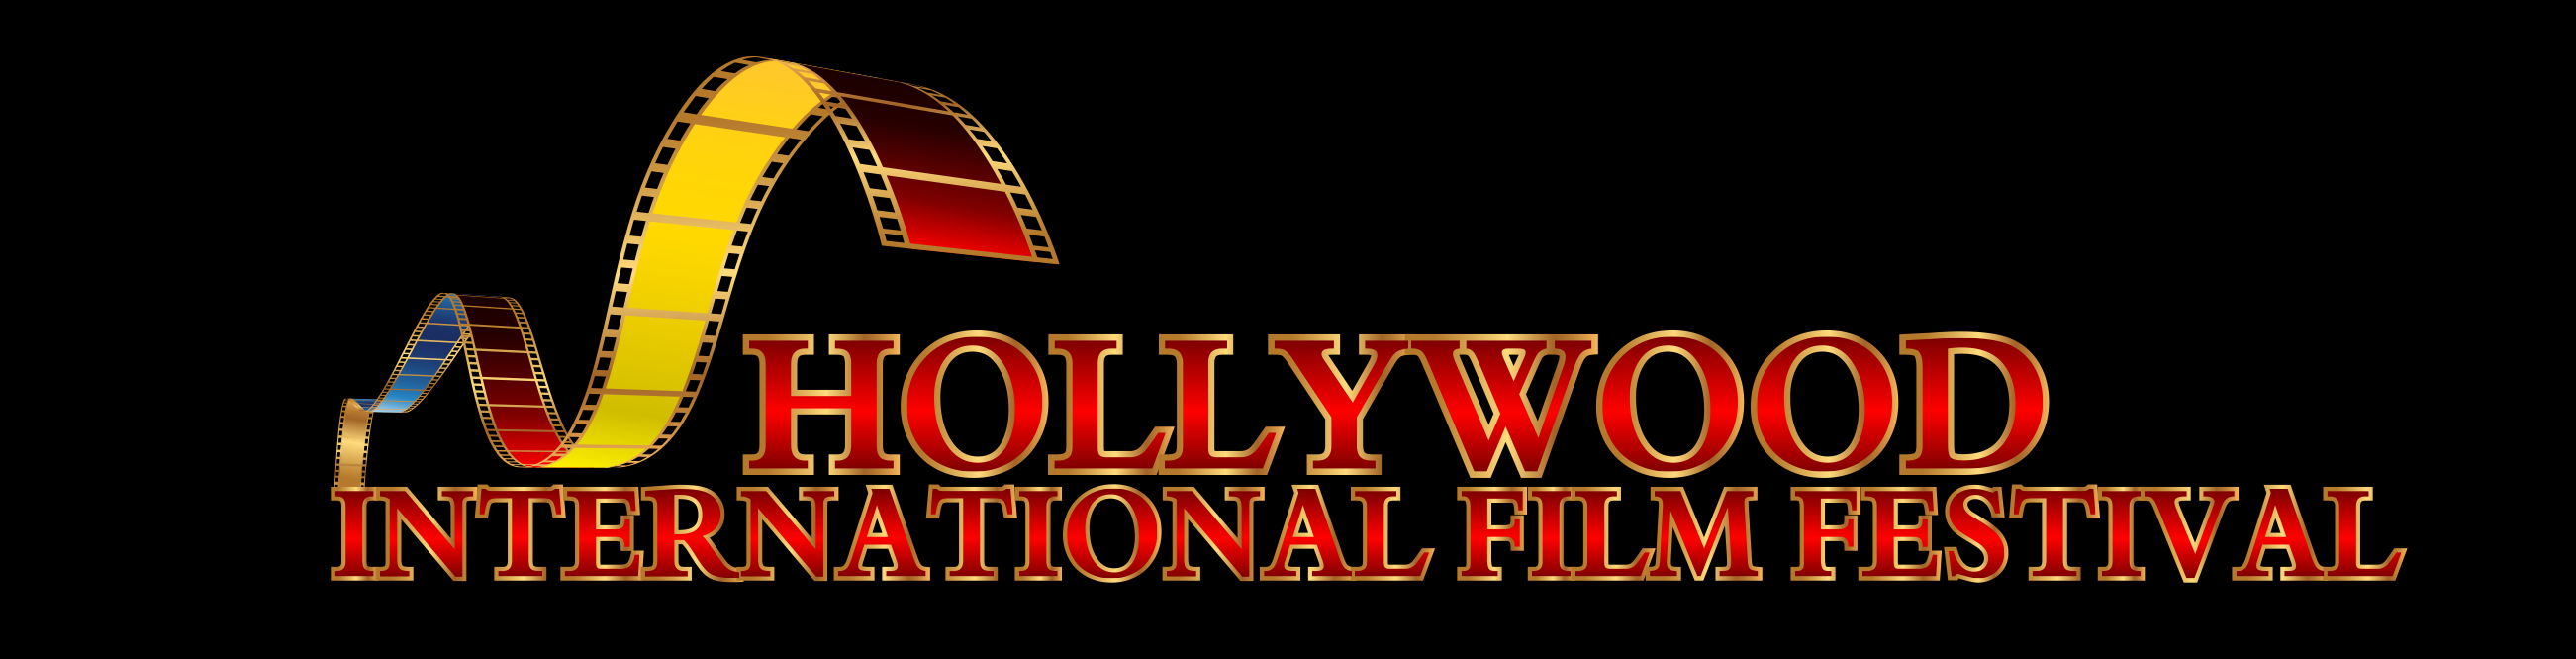 US Hollywood International Film Festival